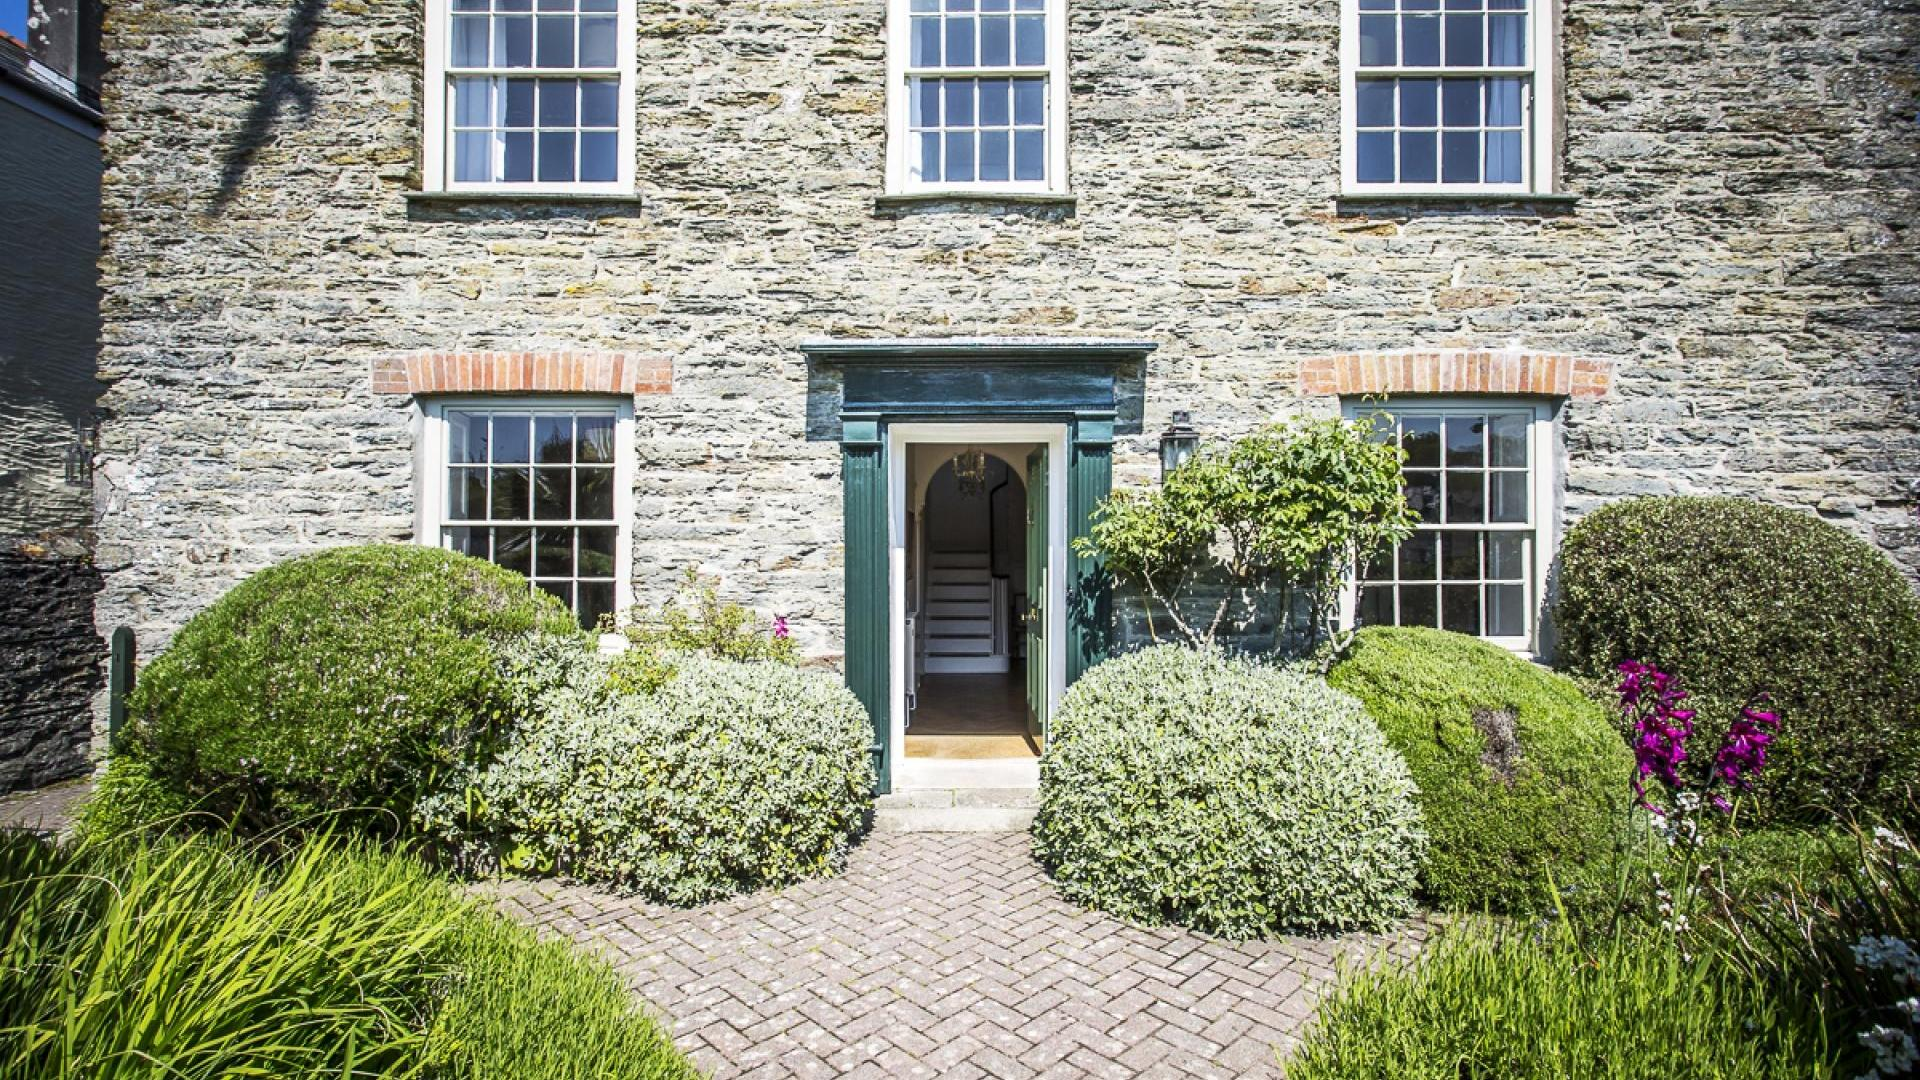 3 Bedroom House in Cornwall, United Kingdom